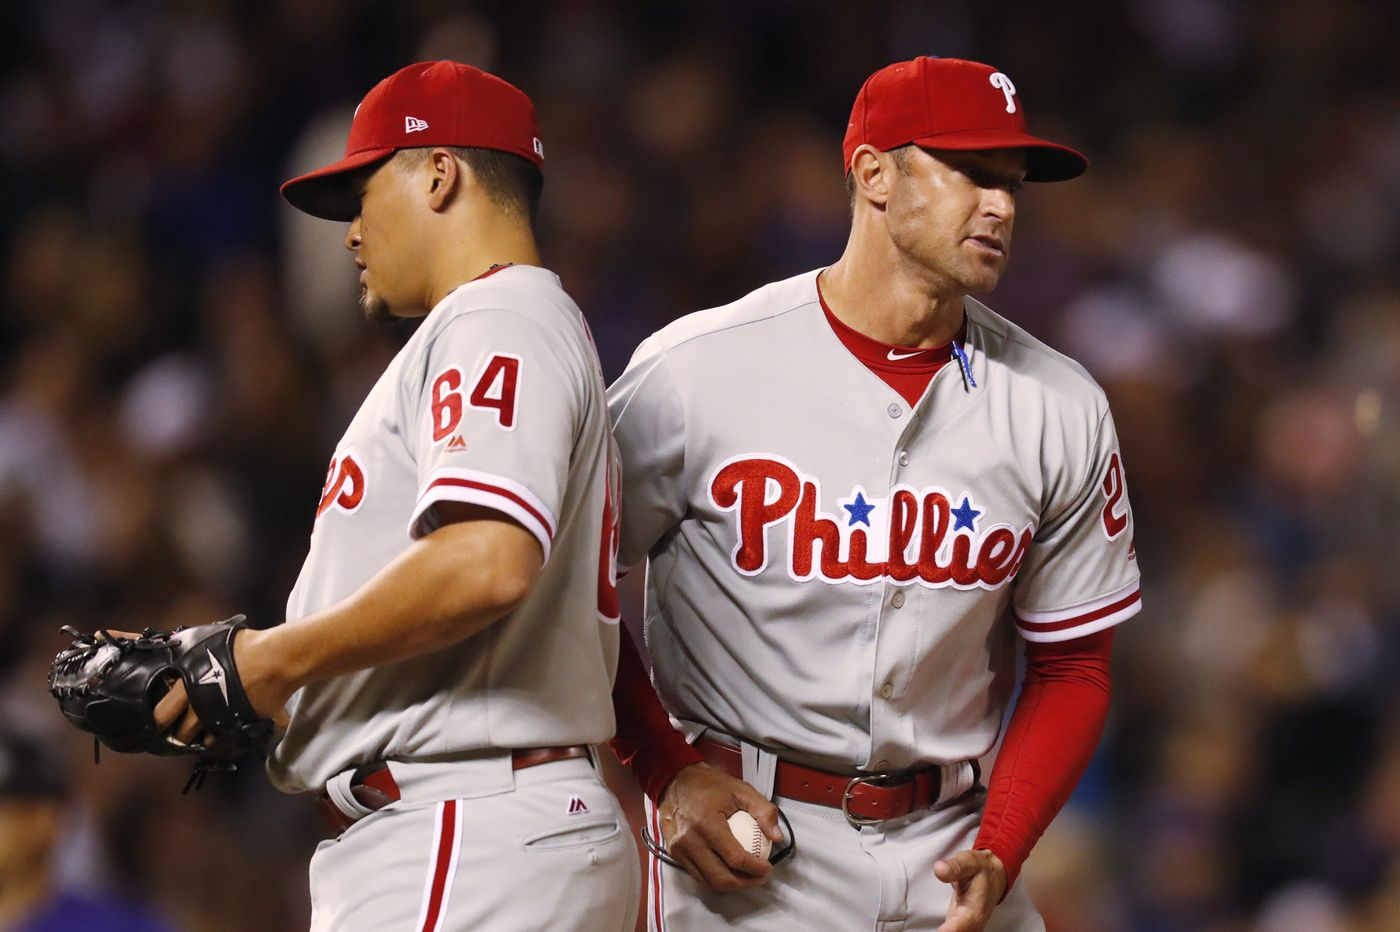 Survey says: Gabe Kapler seeks feedback on first season as Phillies manager